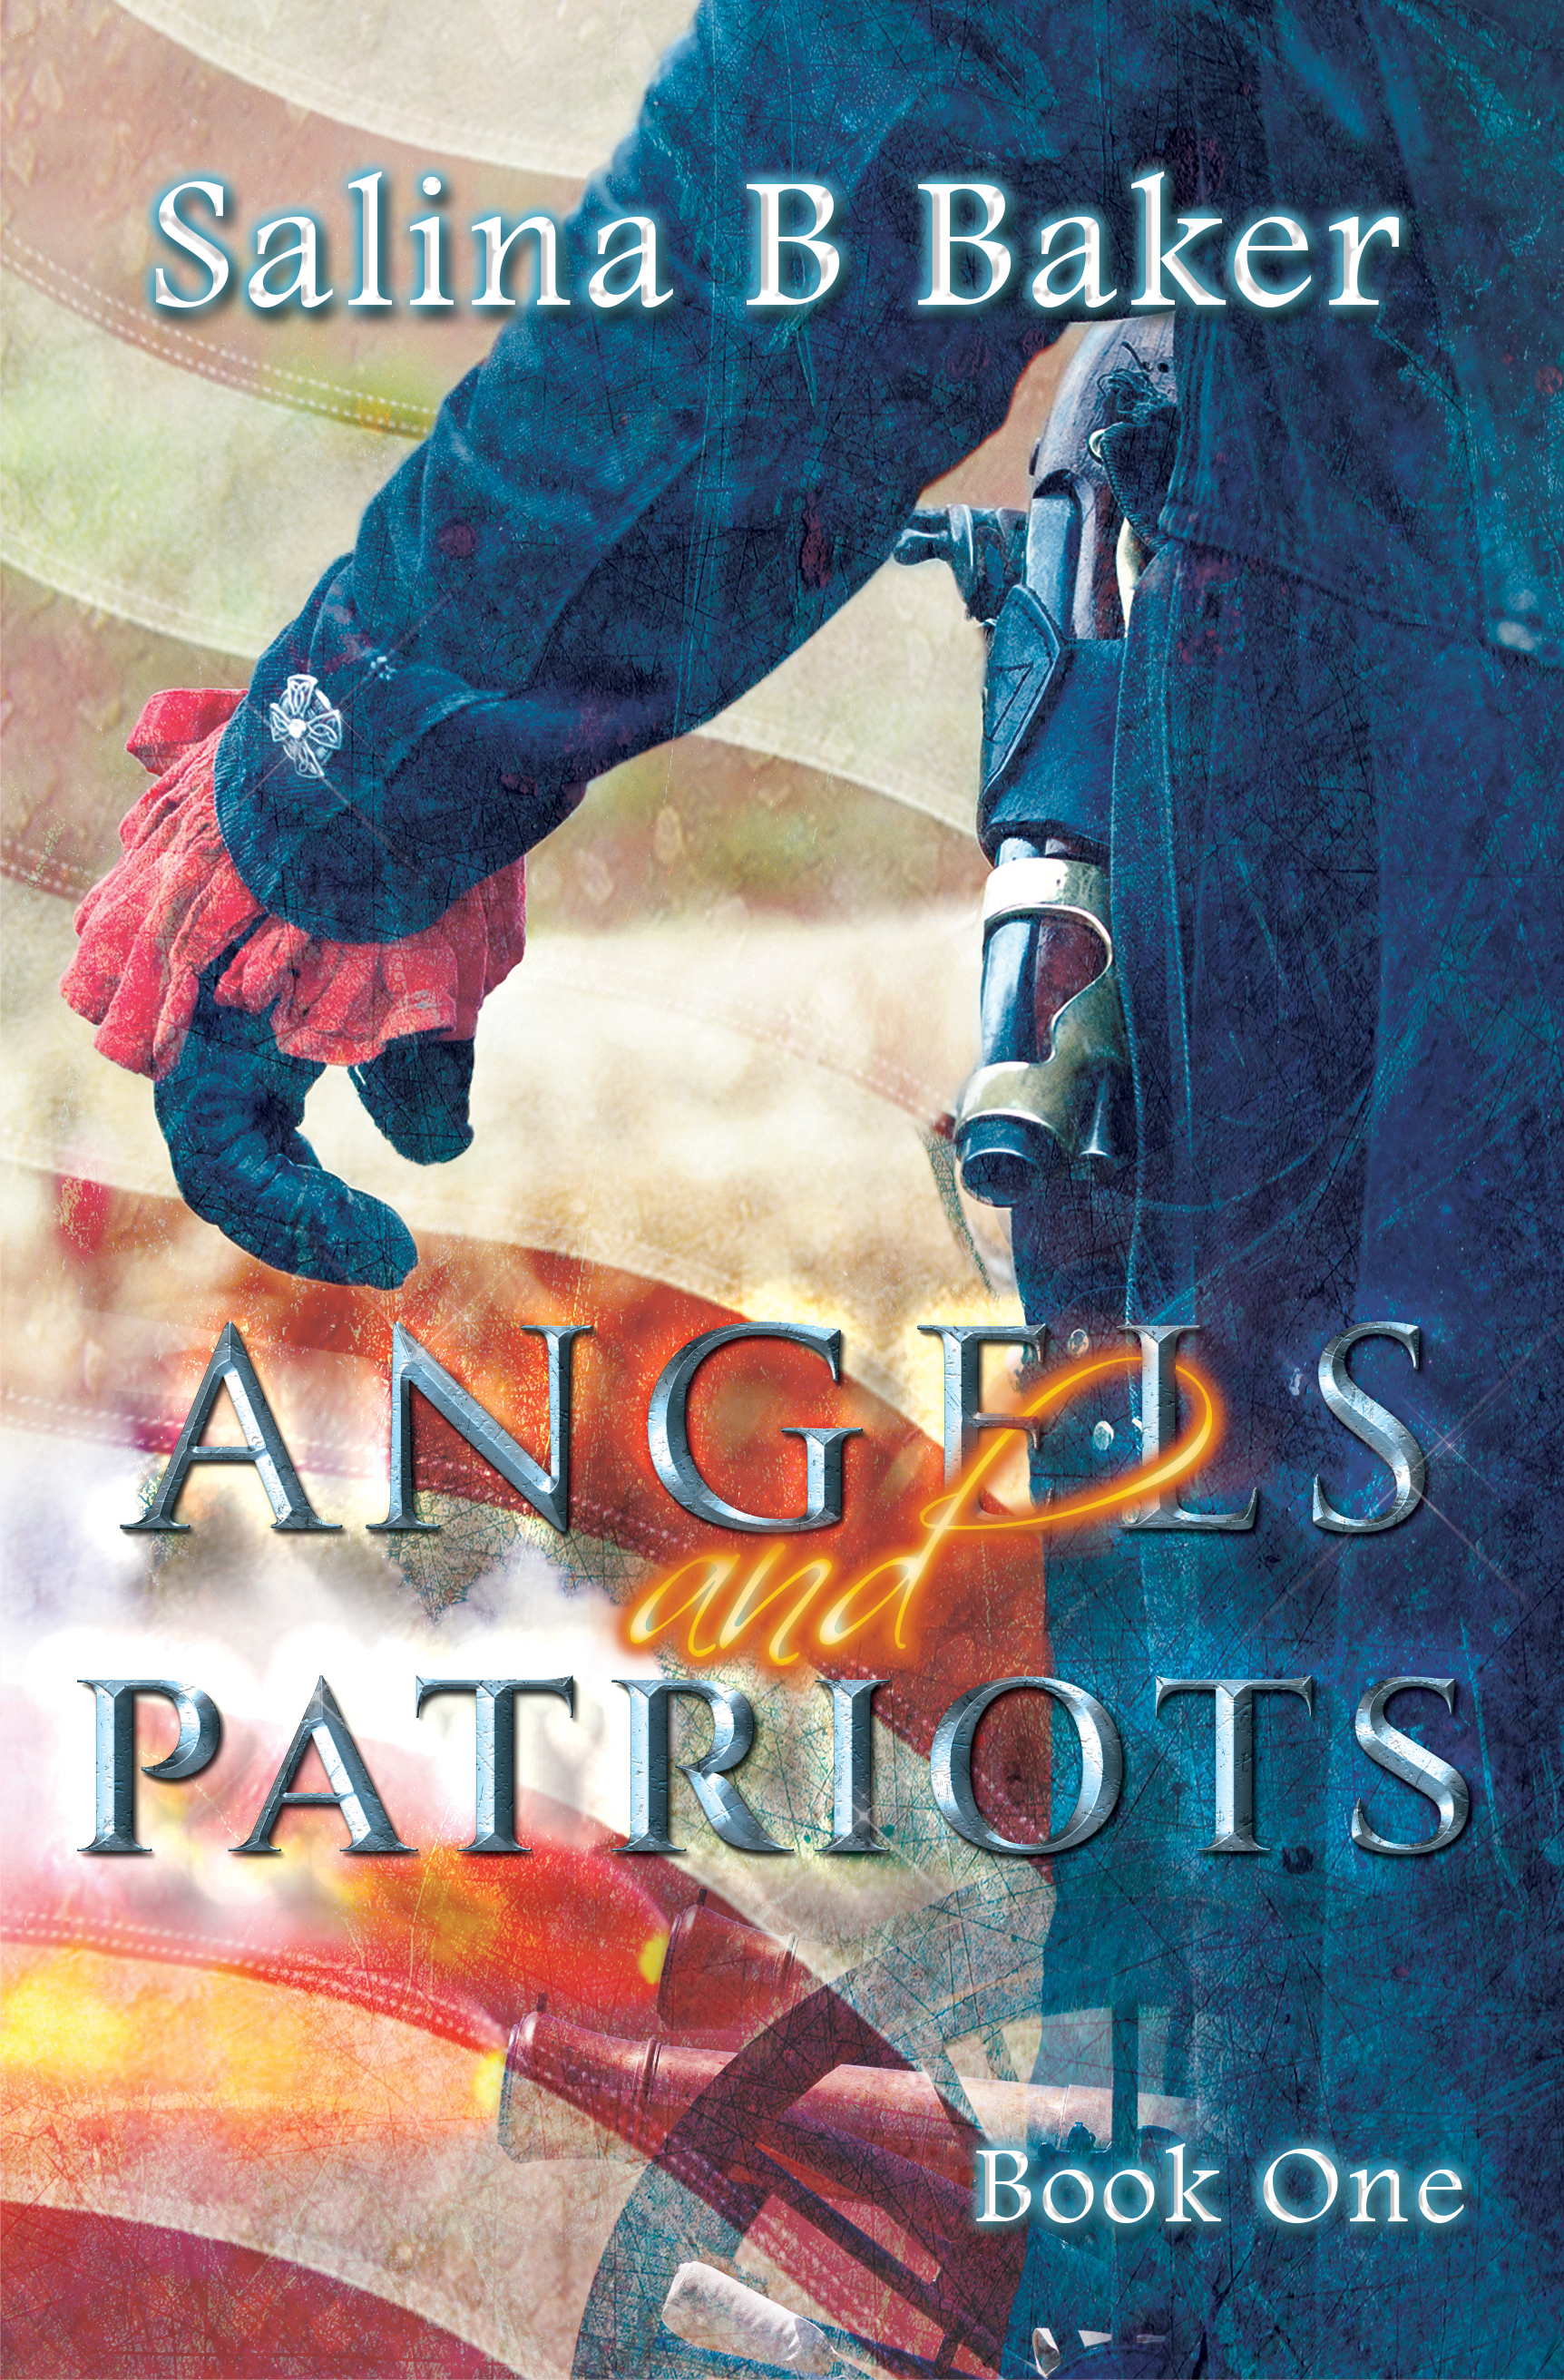 Salina b baker historical fantasy author angels patriots is the violent struggle for freedom played out on the battlefield and the firmament as the angels fend off the demons in a quest to serve fandeluxe Choice Image